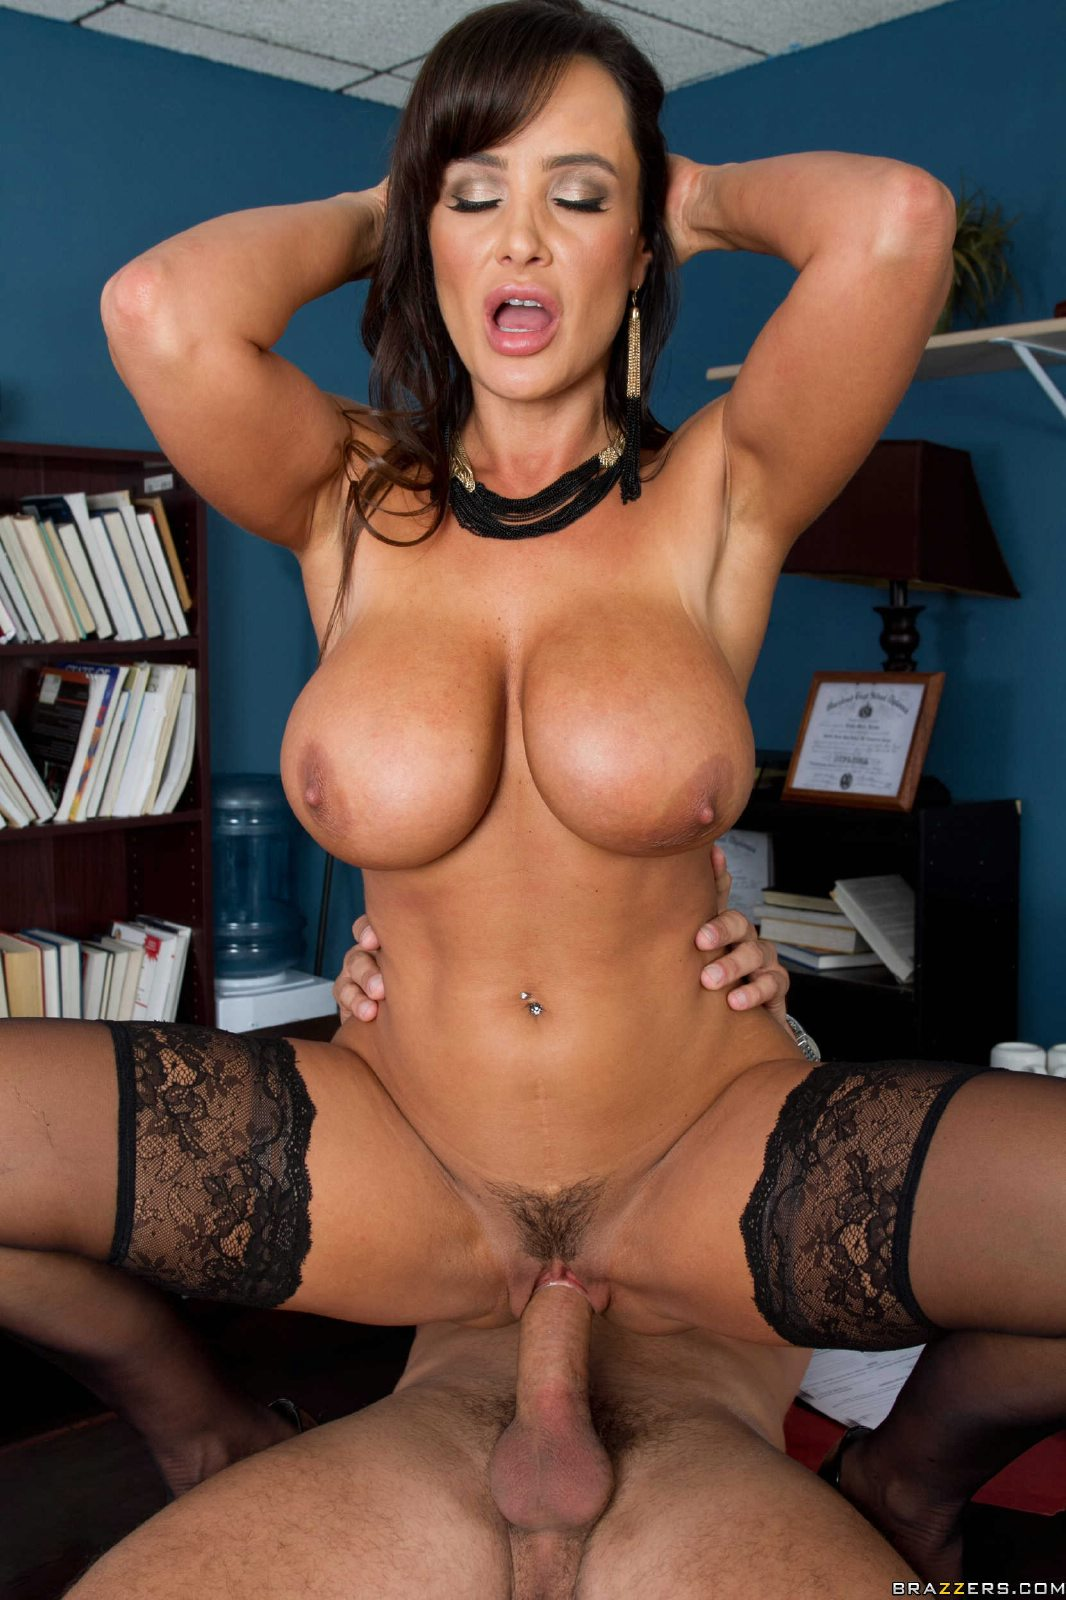 Free free shemale porn images, tranny porn galery